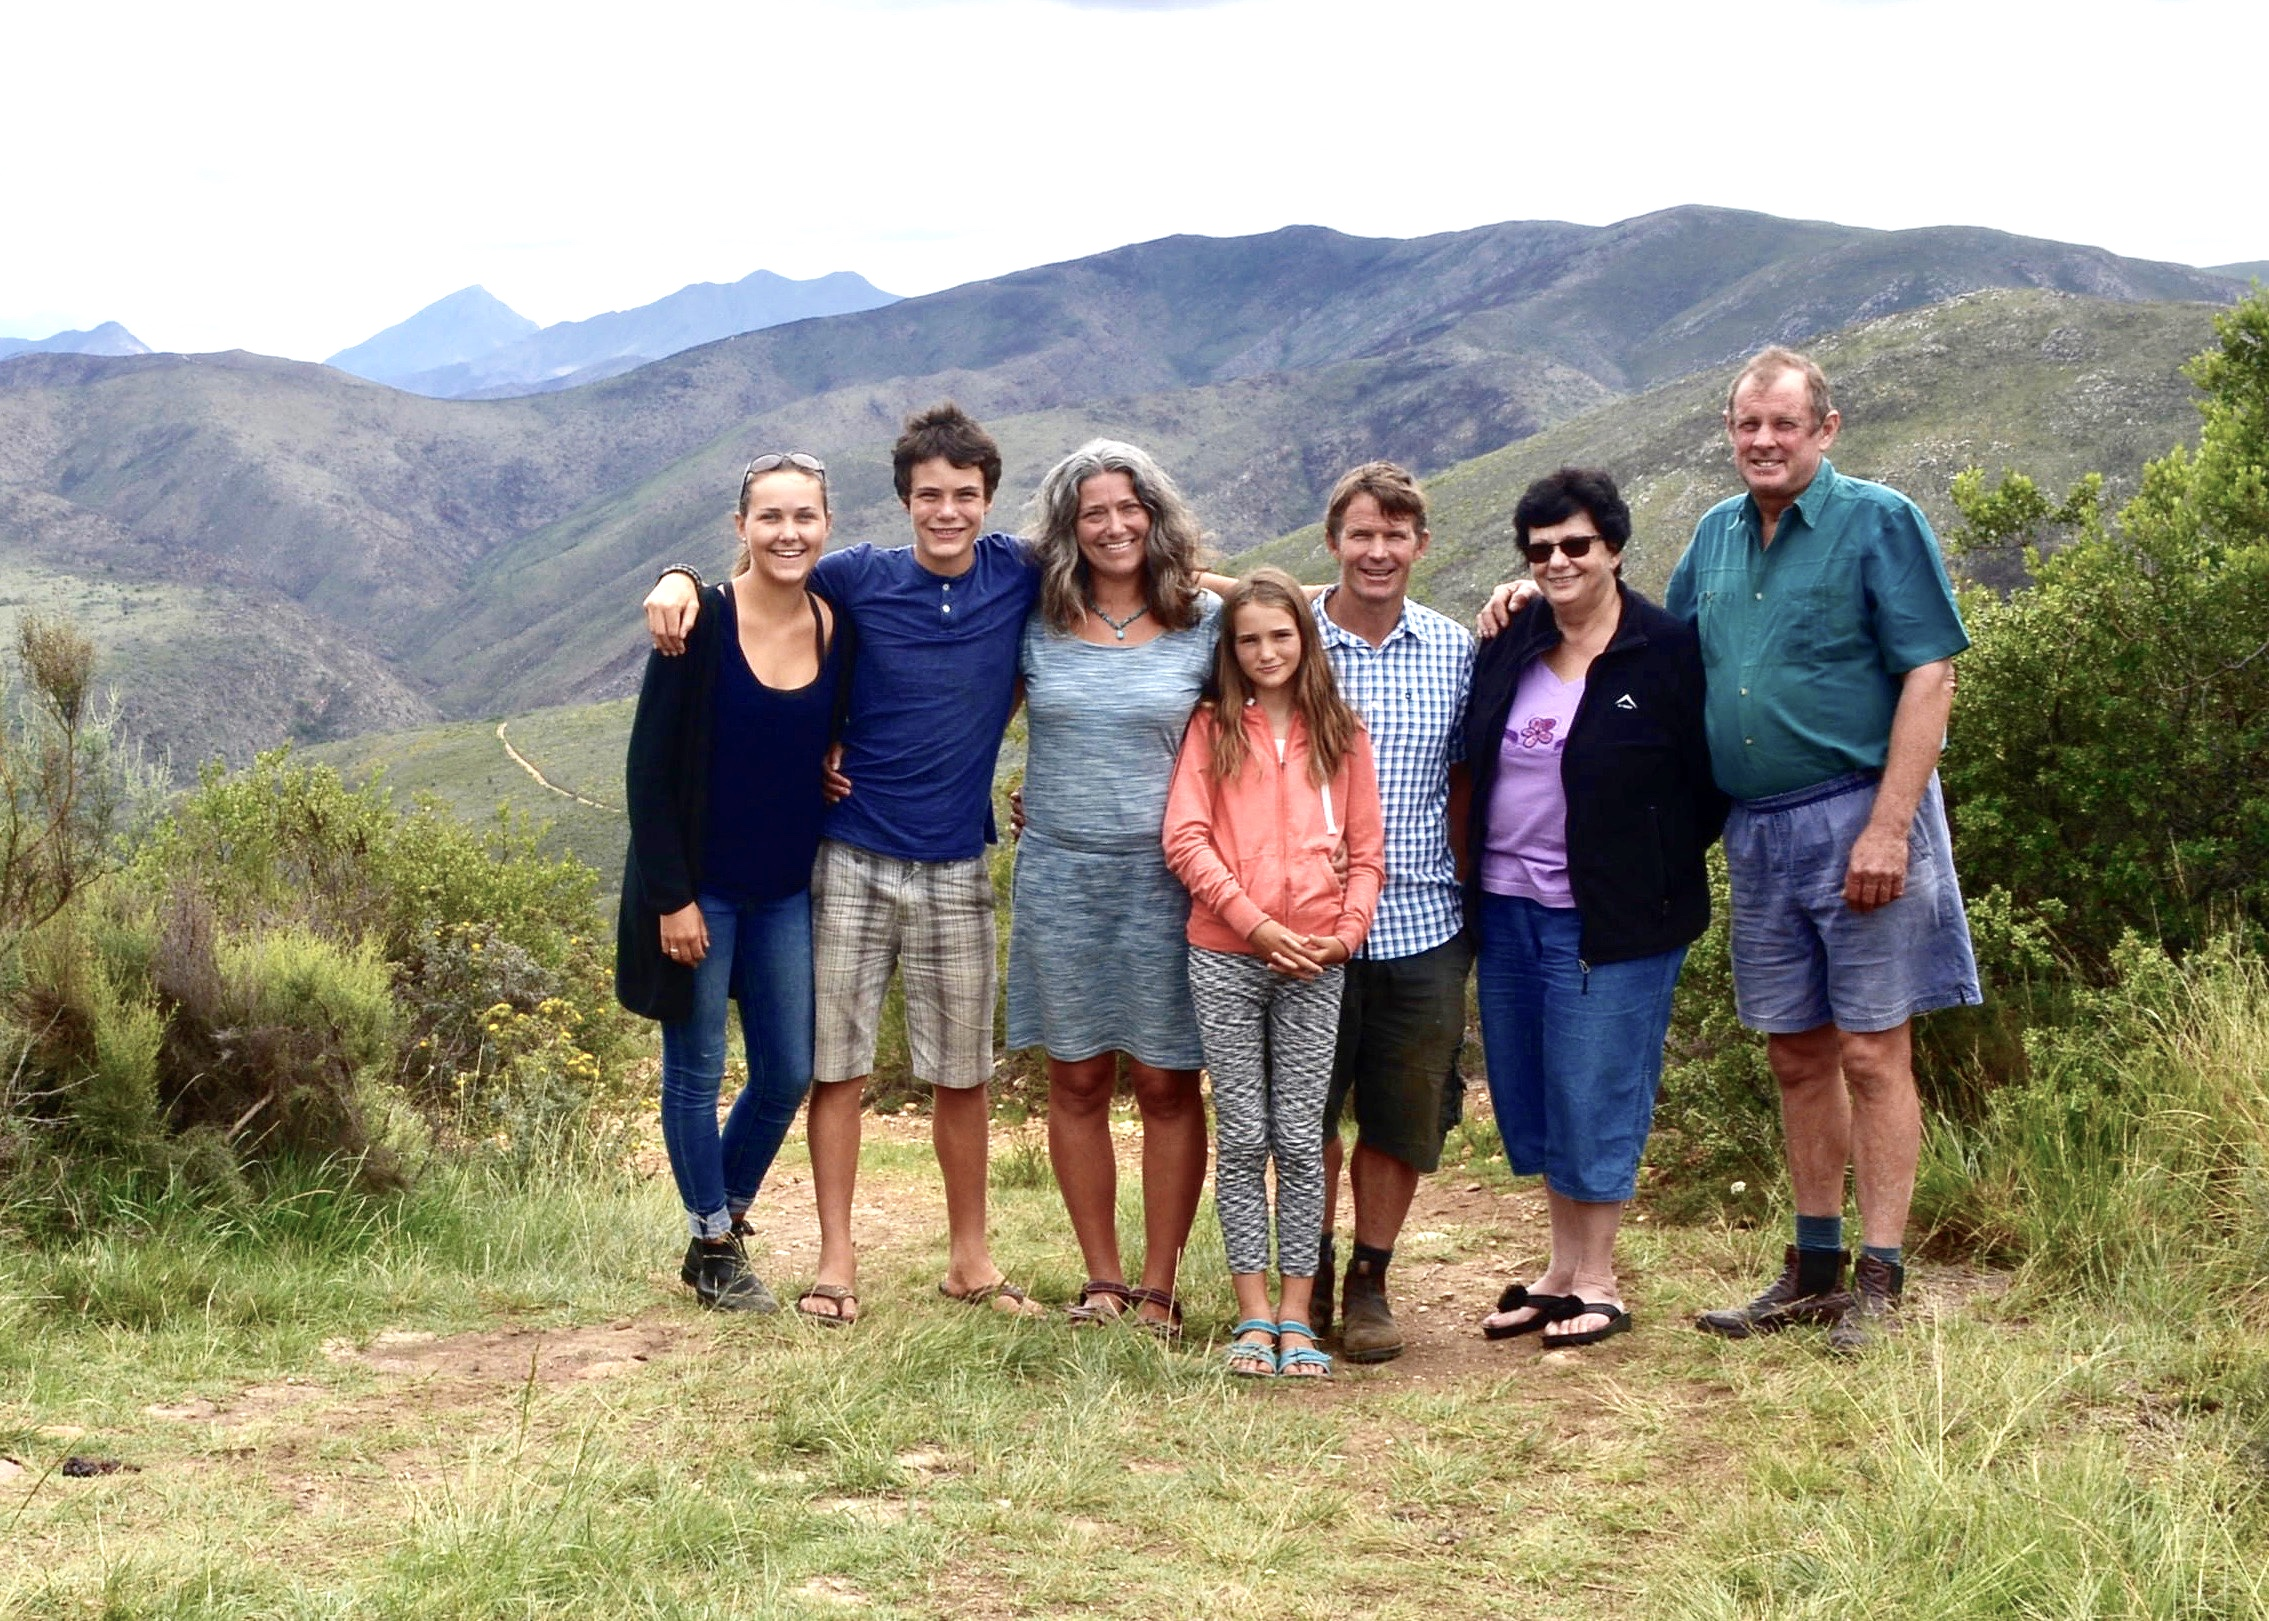 Harvey family with Wild Mountain Honeybush farmers in South Africa